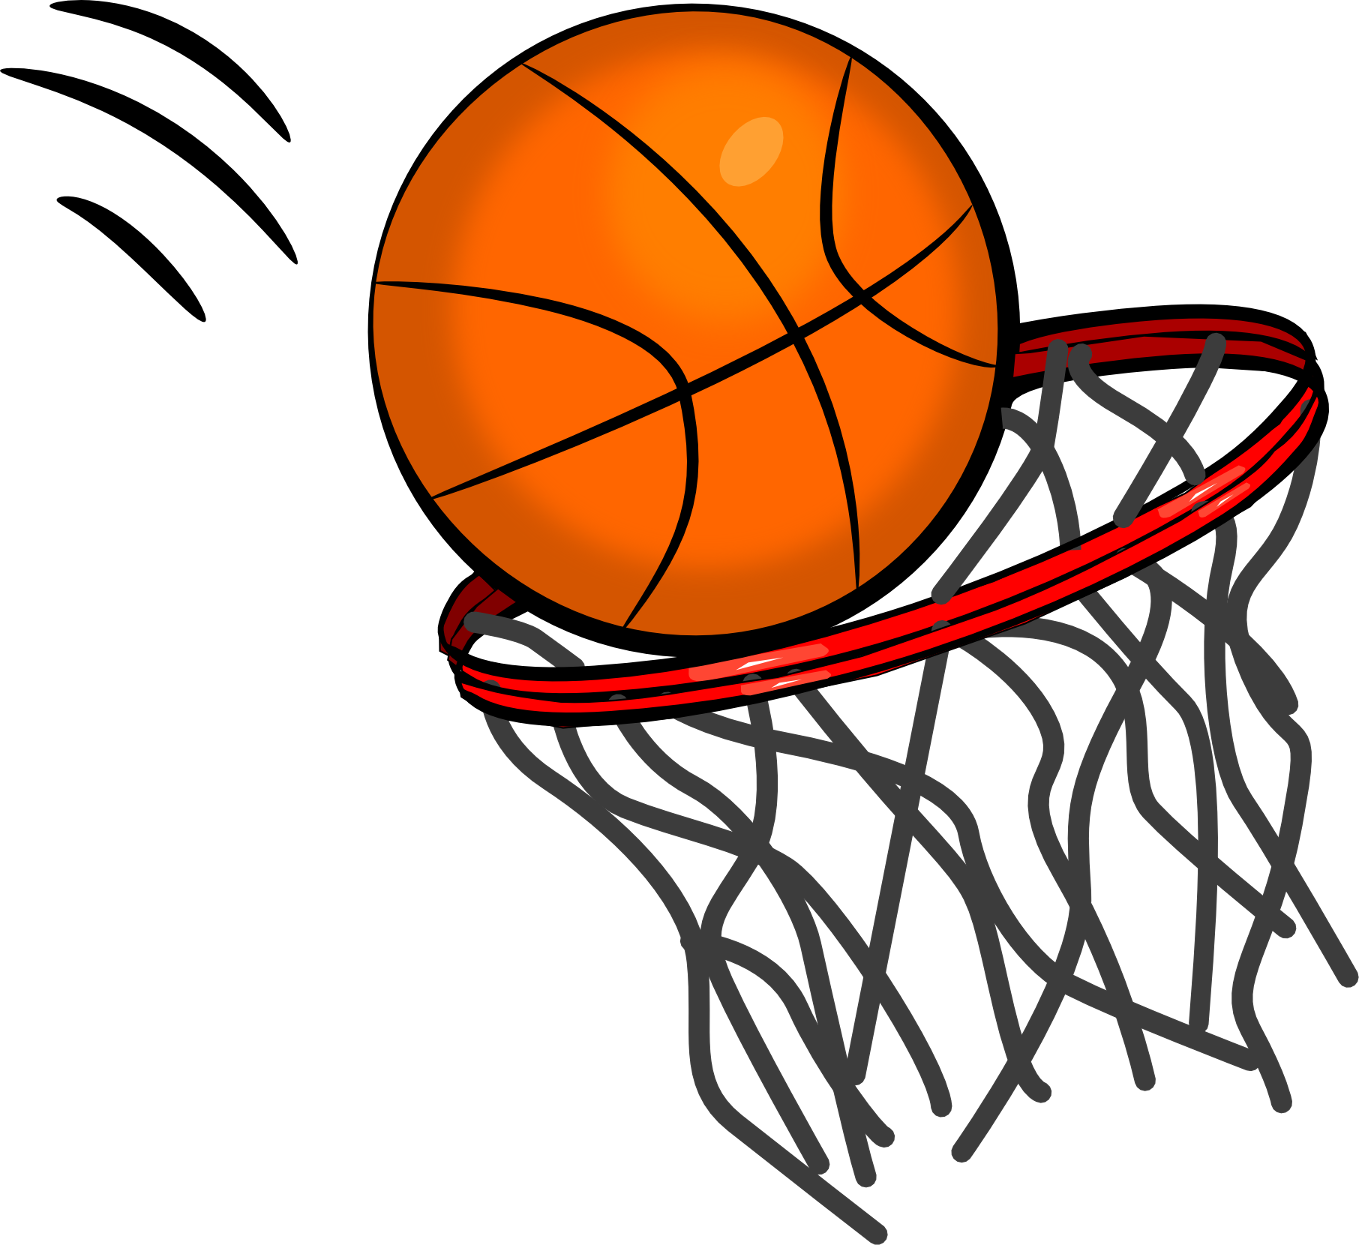 basketball ball clipart clipart suggest basketball clipart free black and white basketball clipart images free